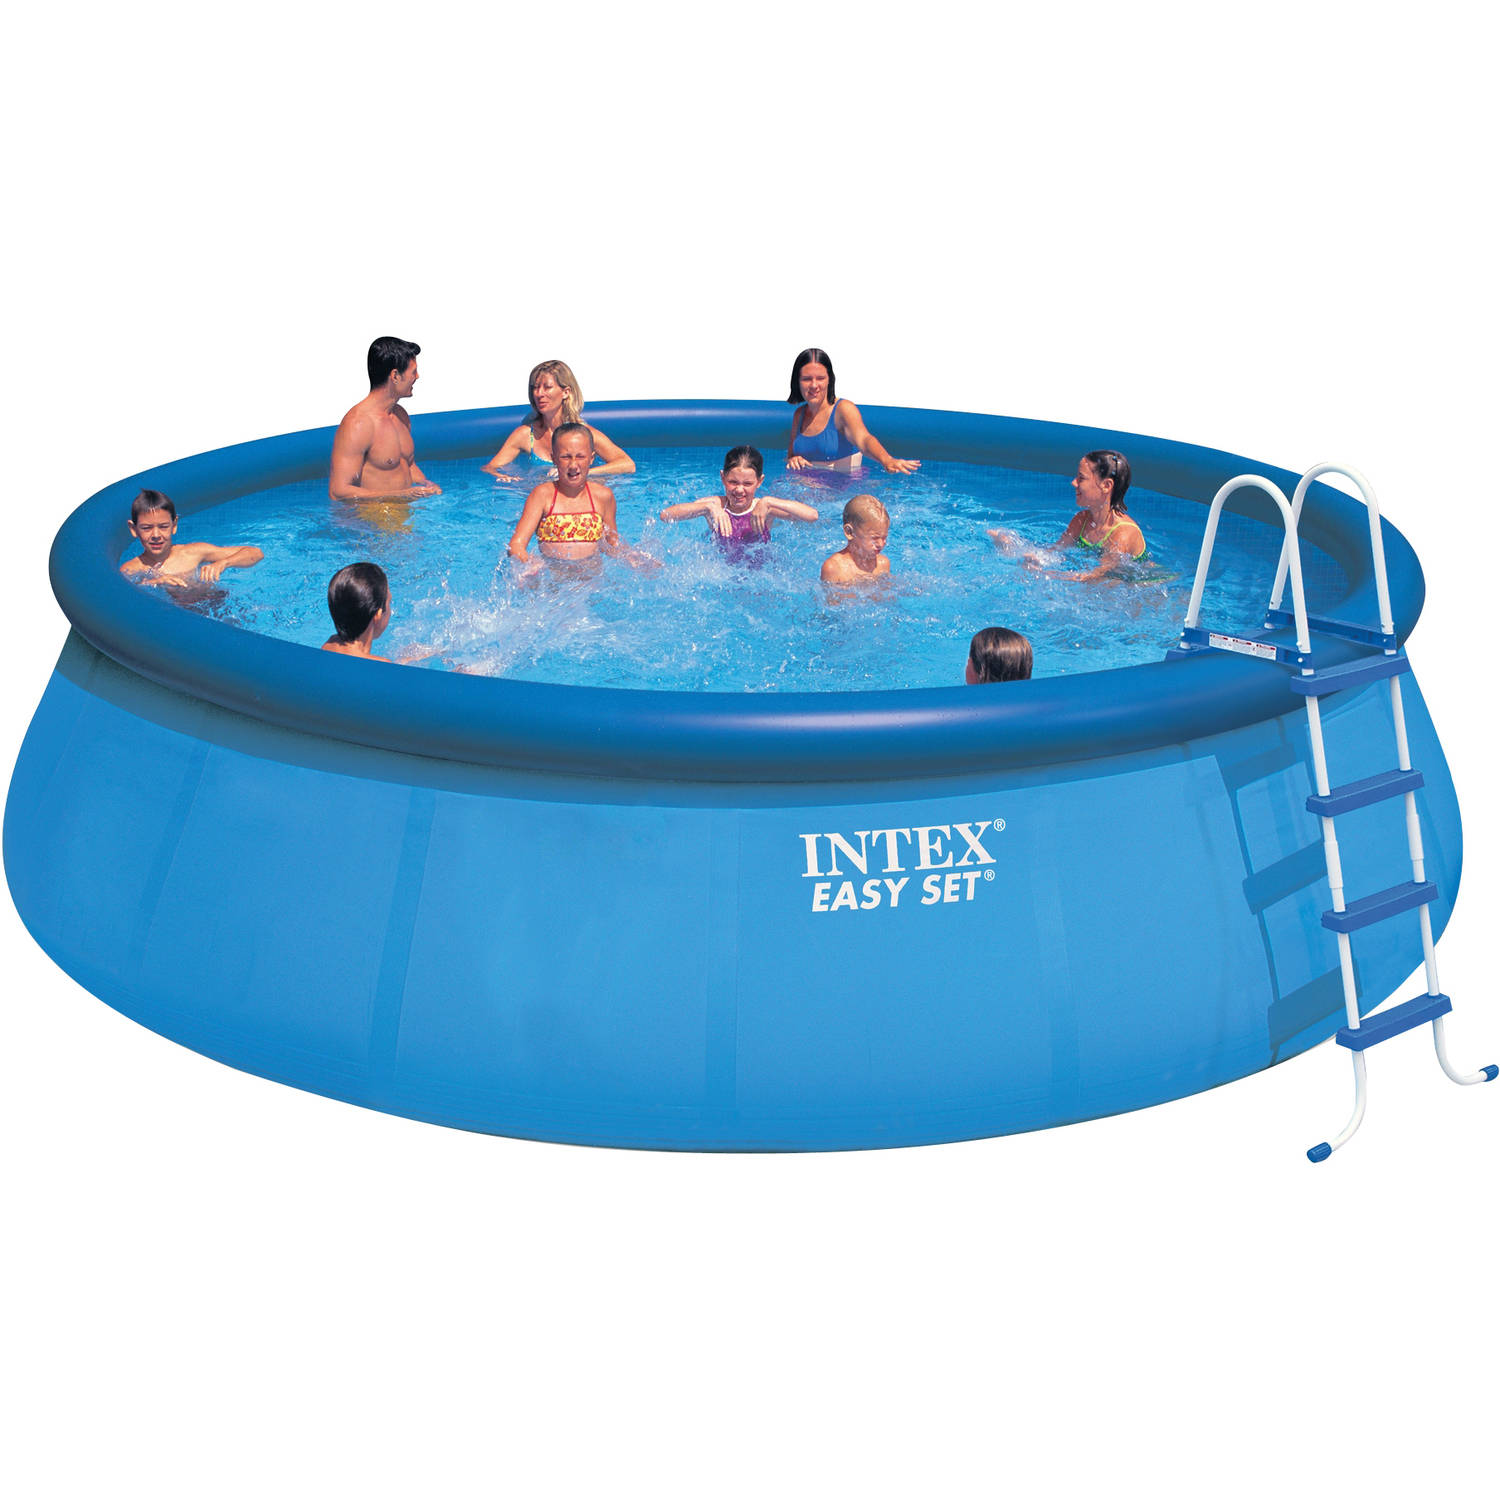 "Intex 18' x 48"" Easy Set Swimming Pool"